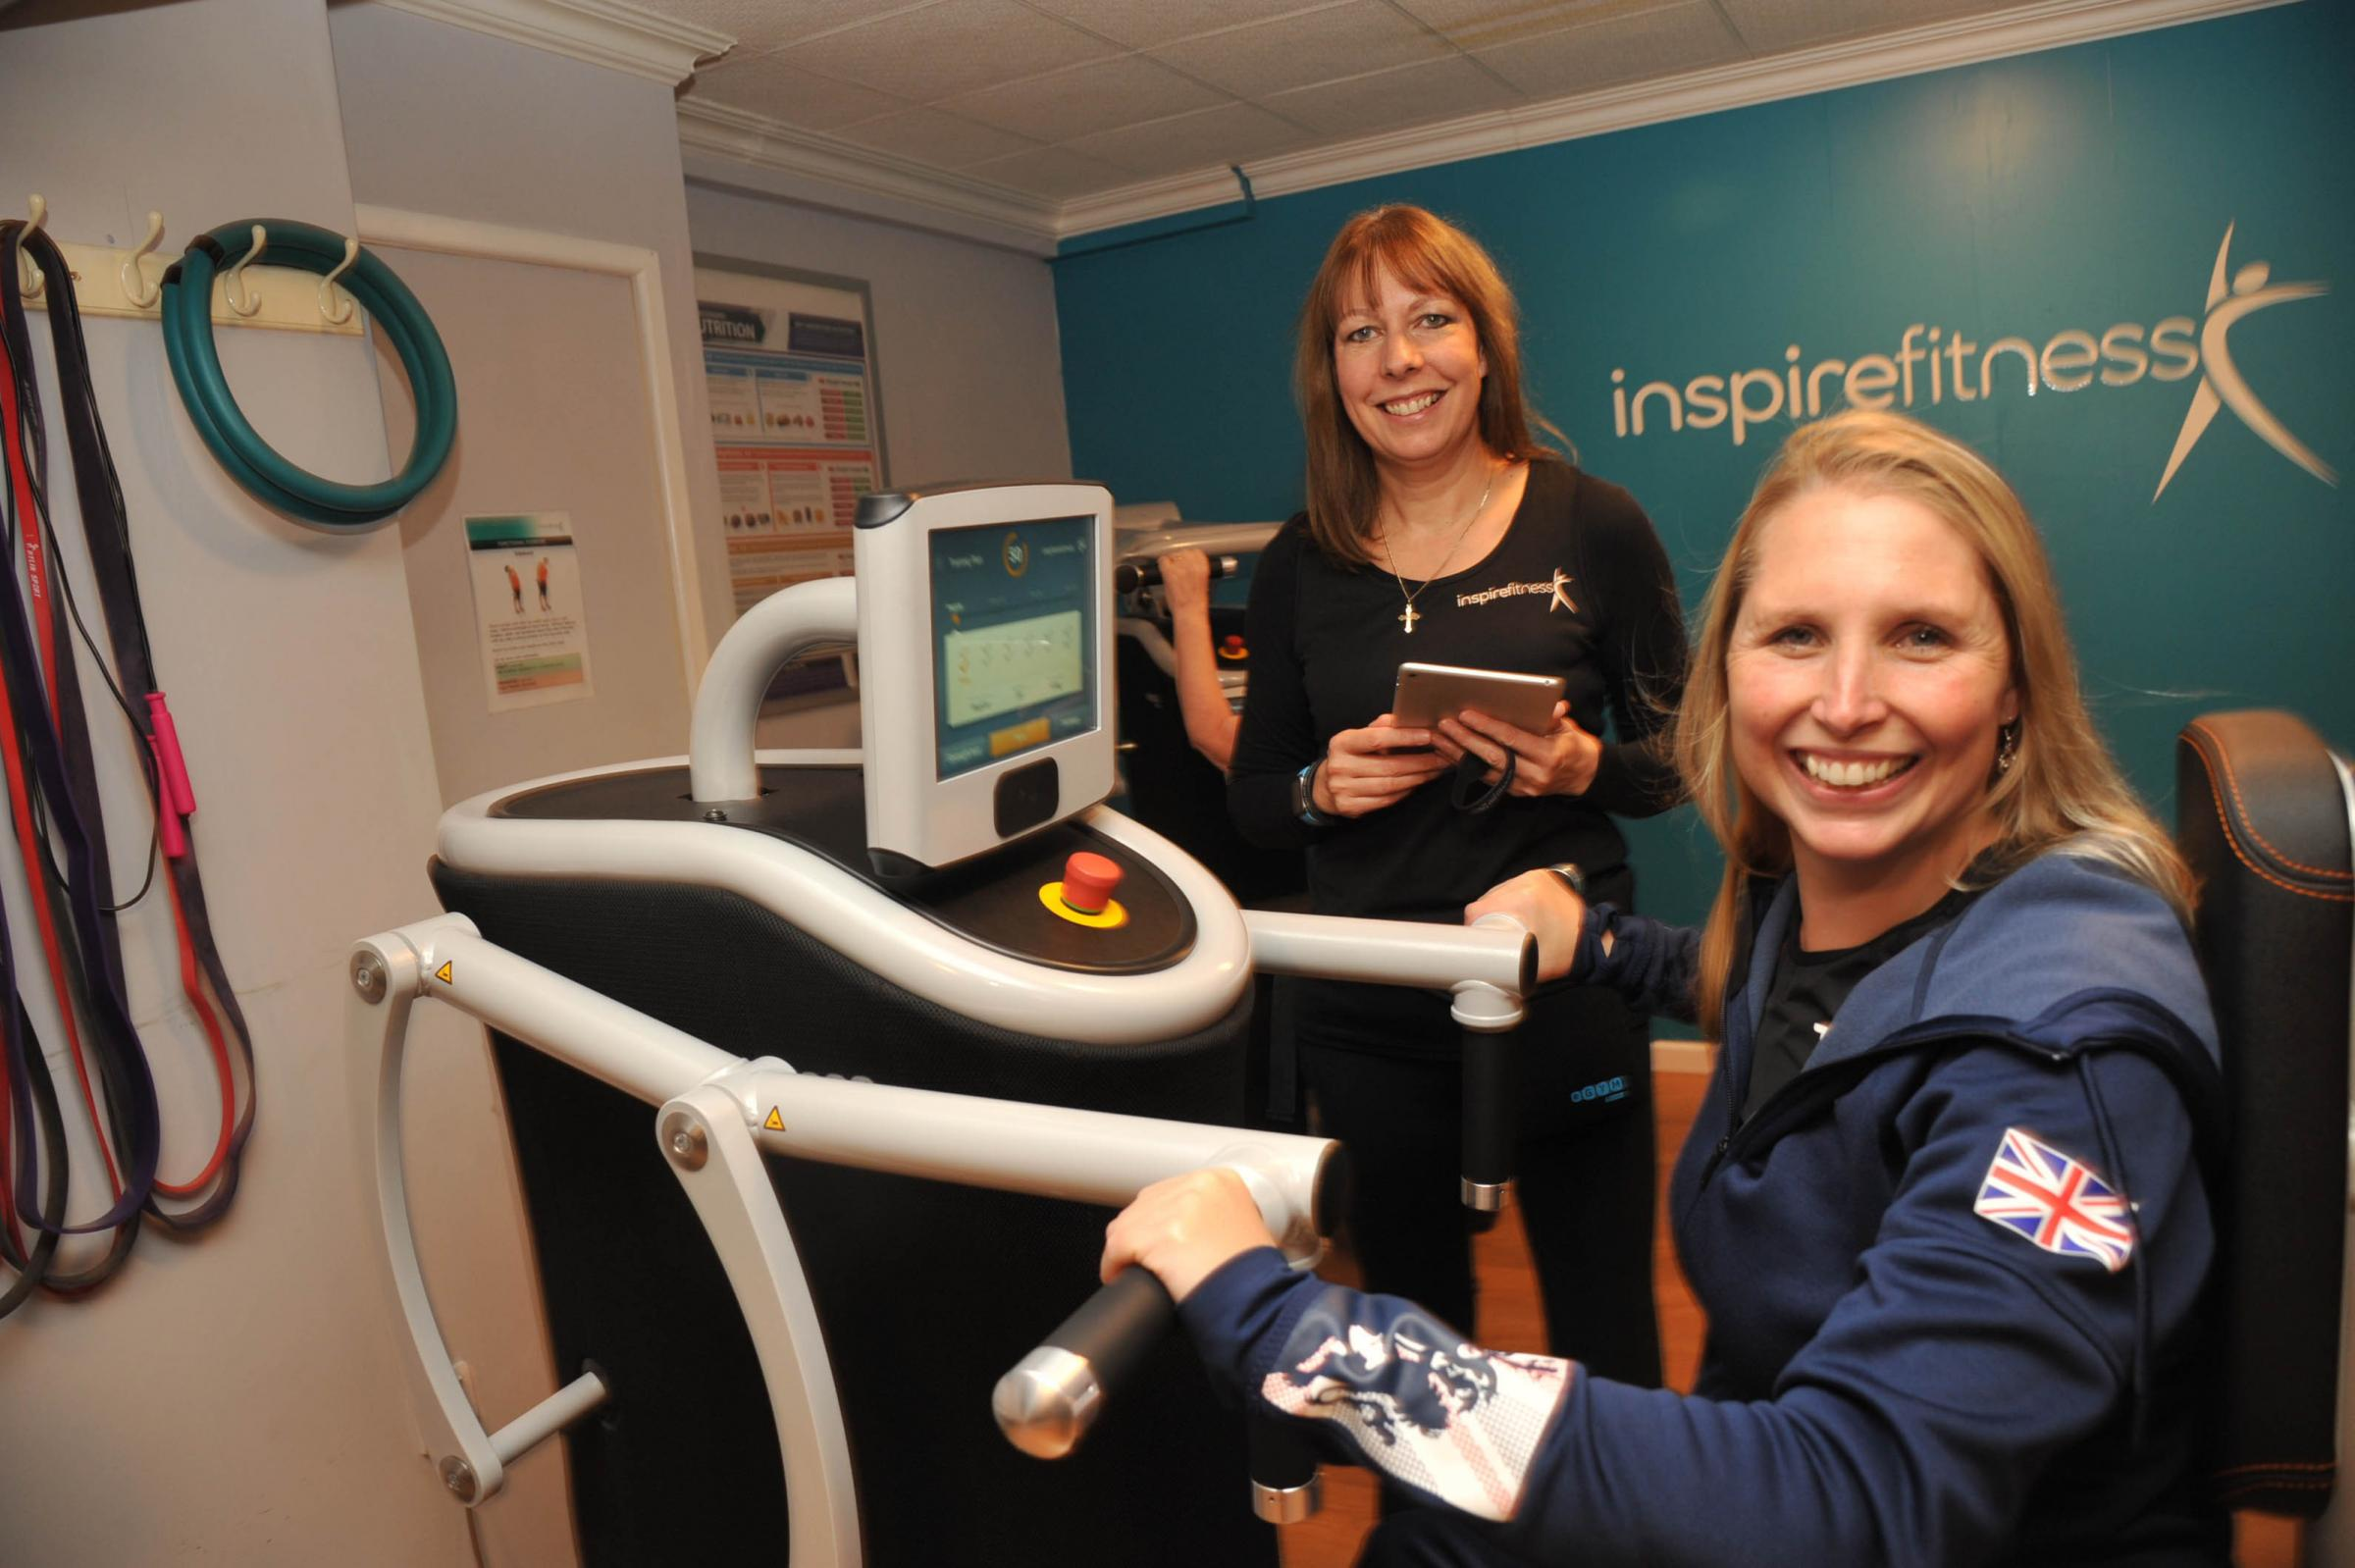 Paralympic swimmer Stephanie Millward and owner Ruth Green at the opening of the new gym equipment. Photo Trevor Porter 59928 2.